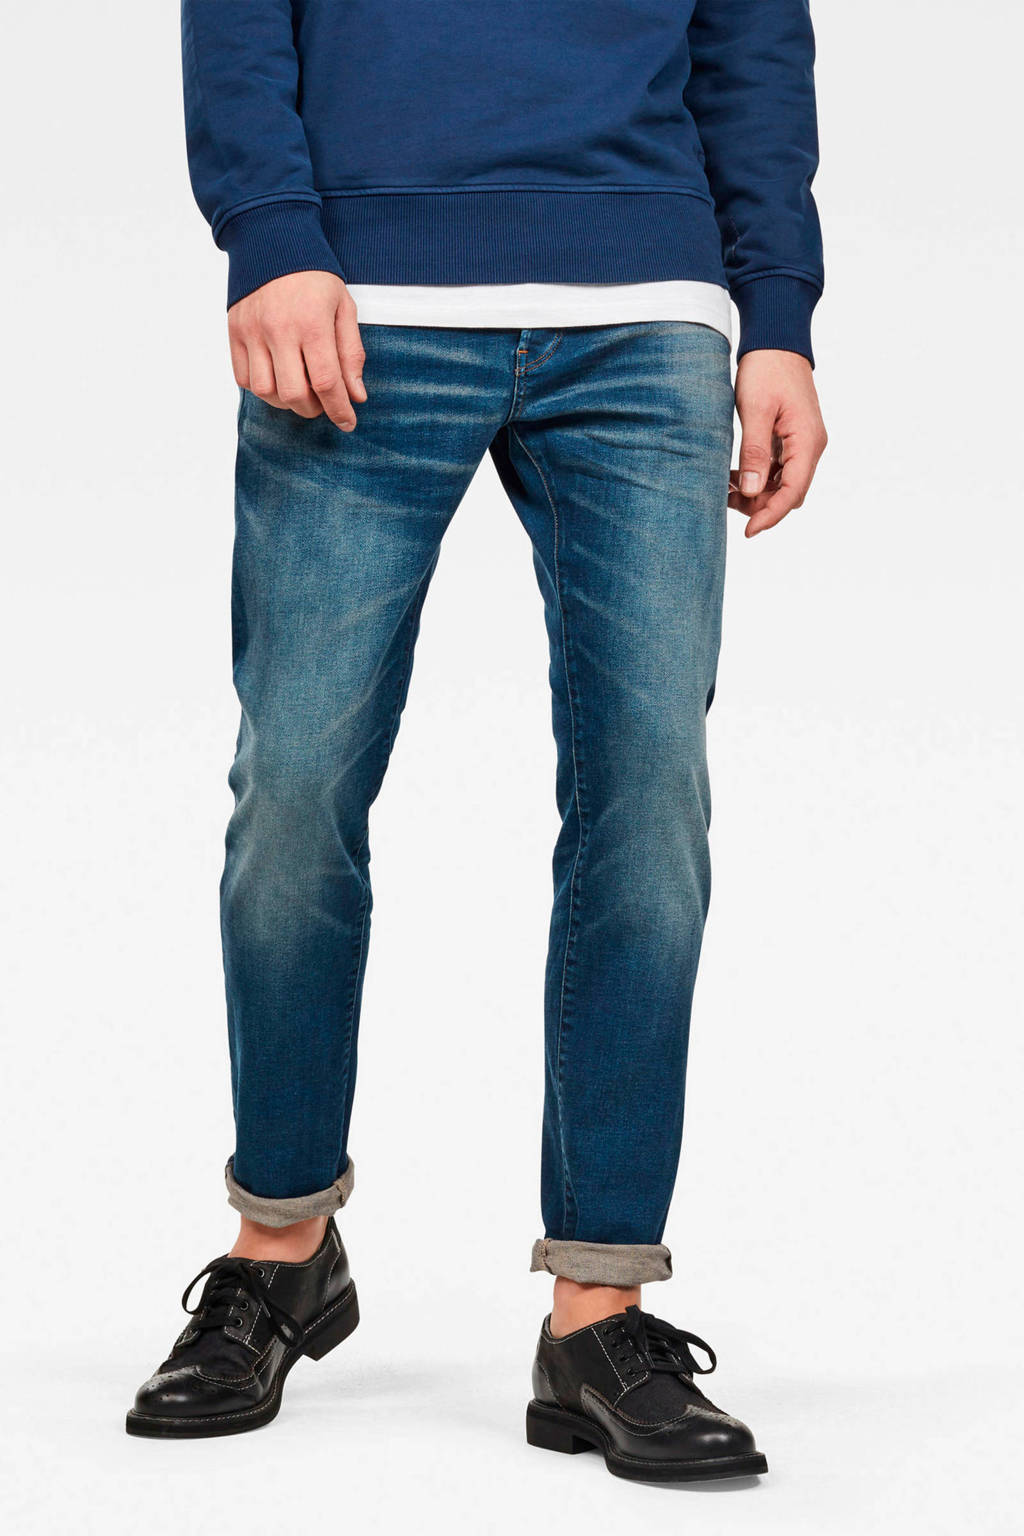 G-Star RAW 3301 slim fit jeans worker blue faded